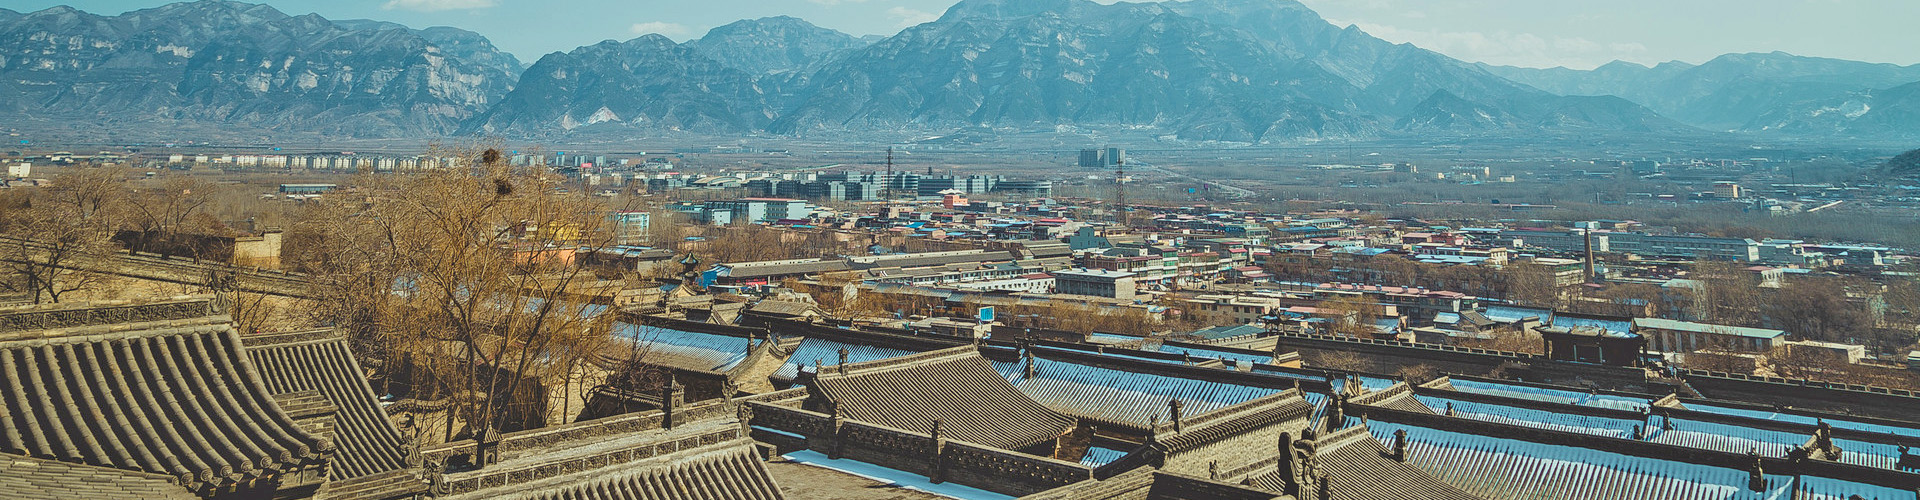 Pingyao Ancient Architecture Tour from Xi'an